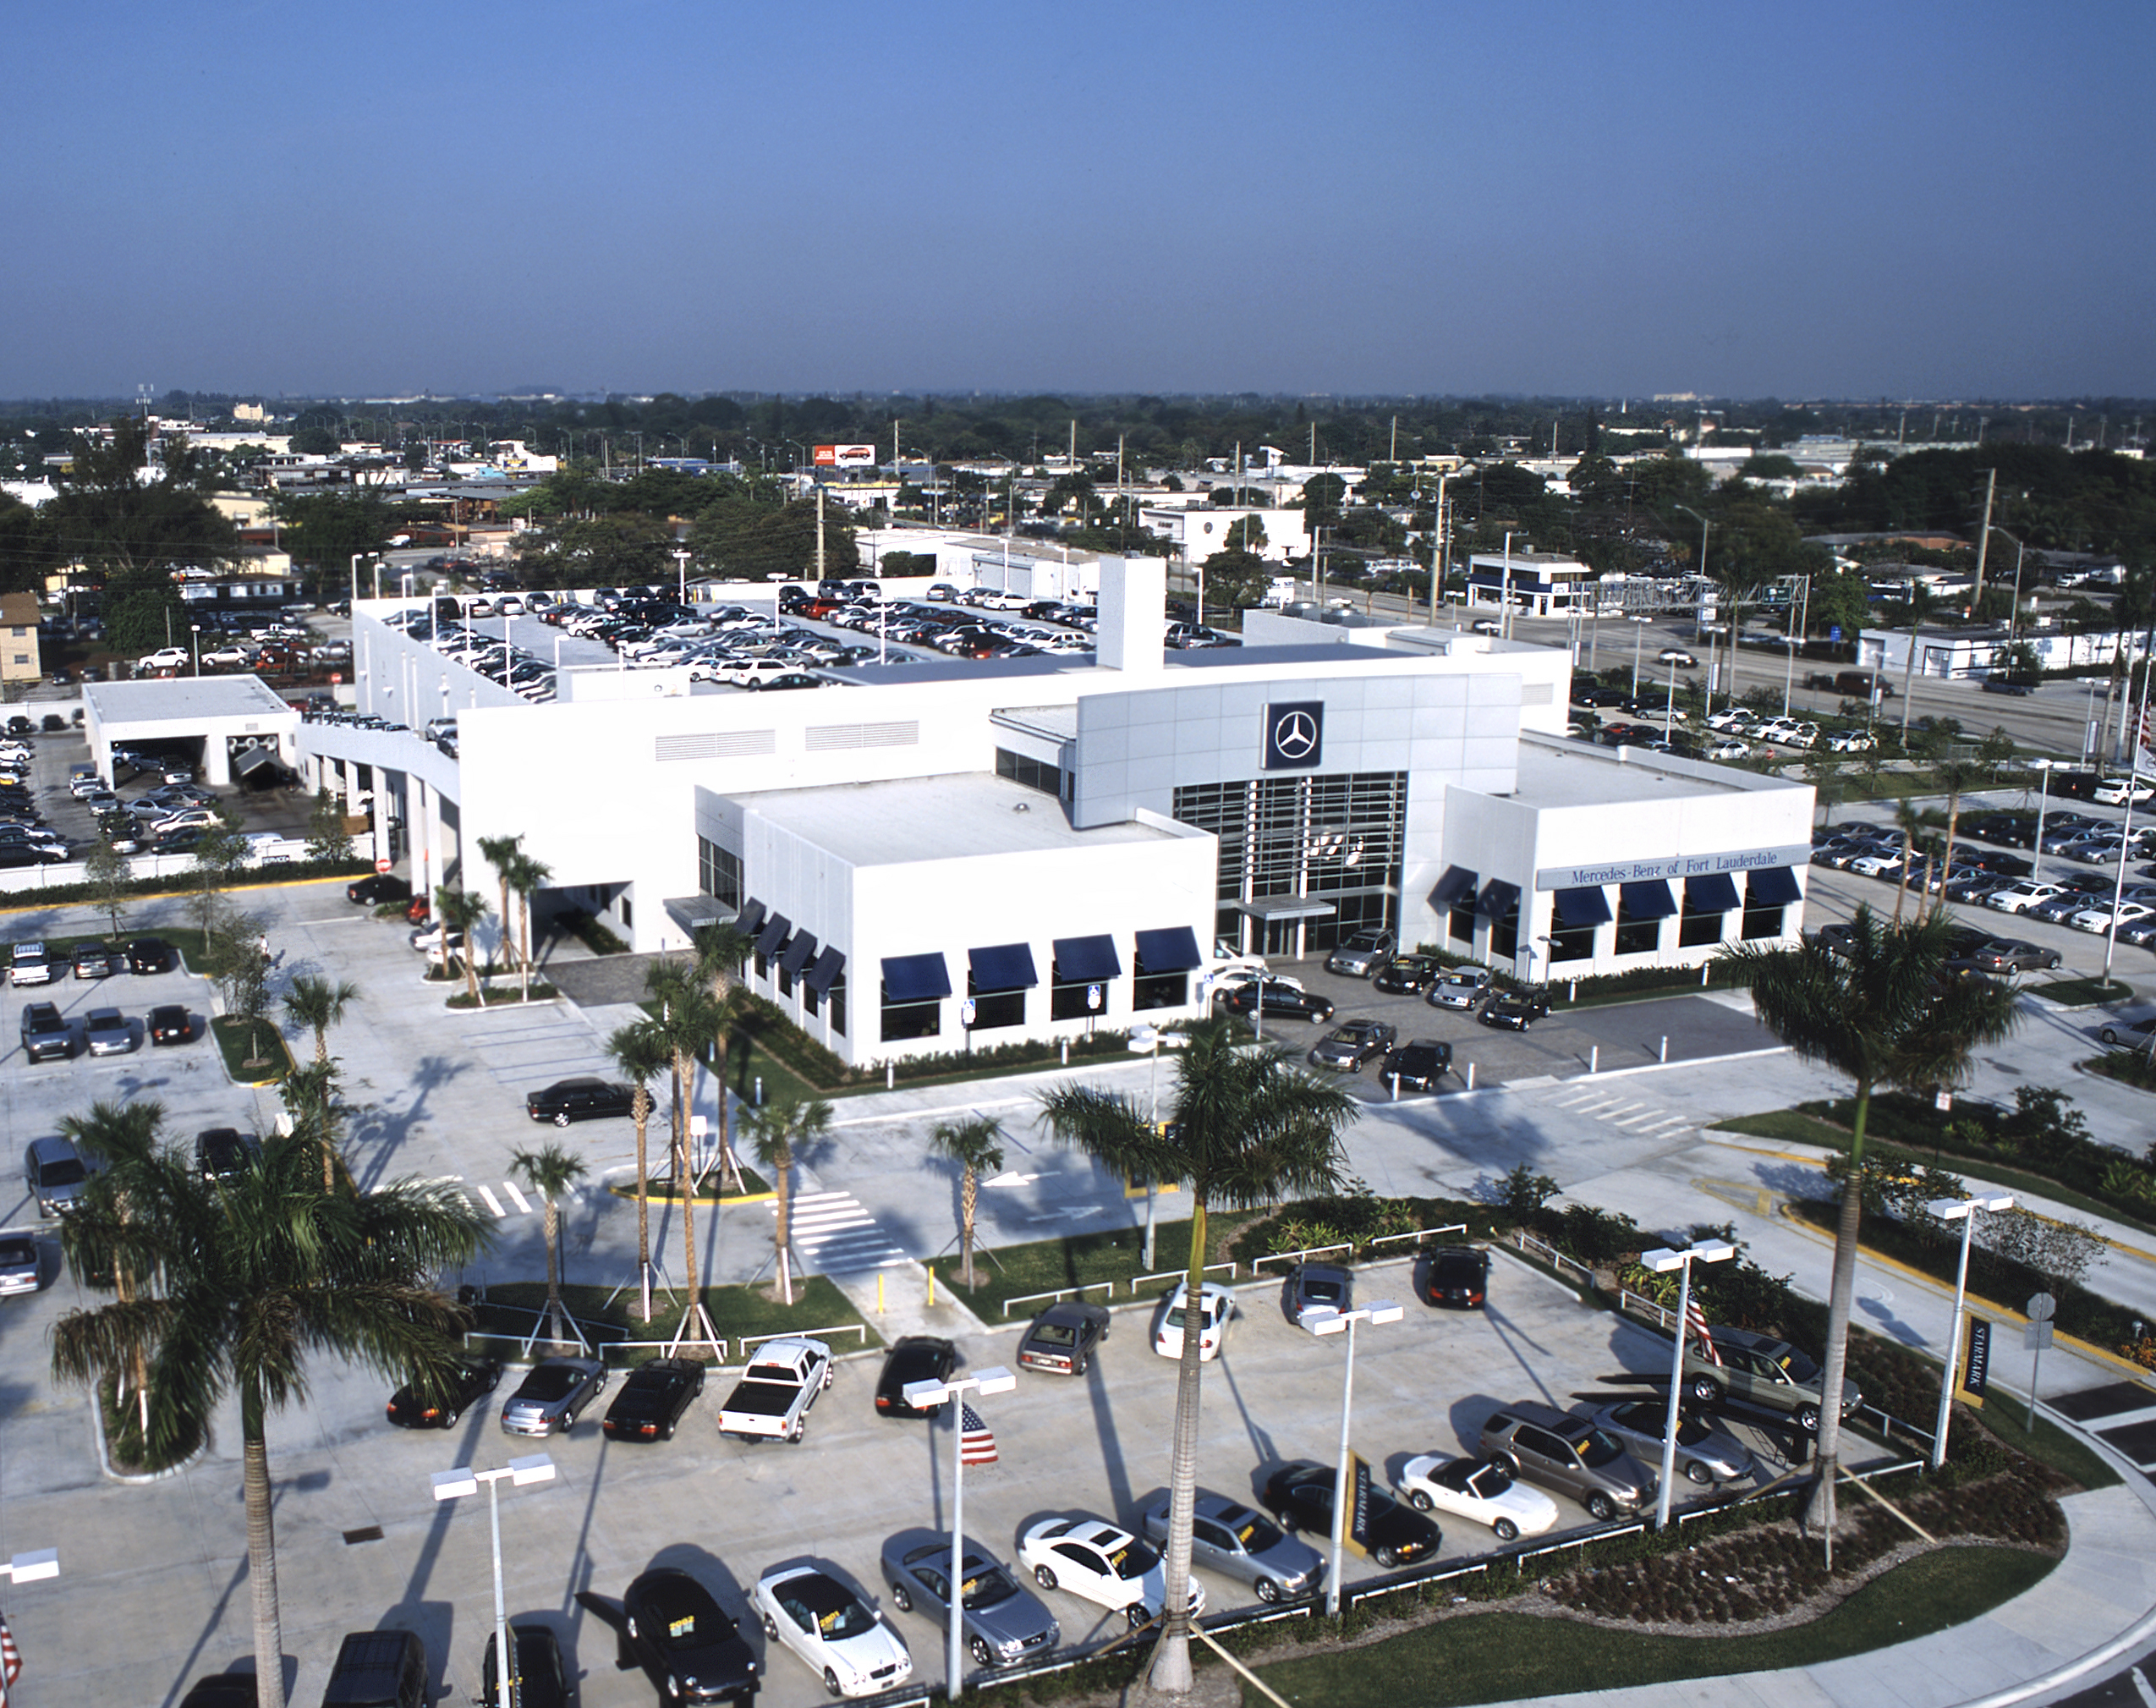 Miami_Automobile dealerships_Mercedes Benz